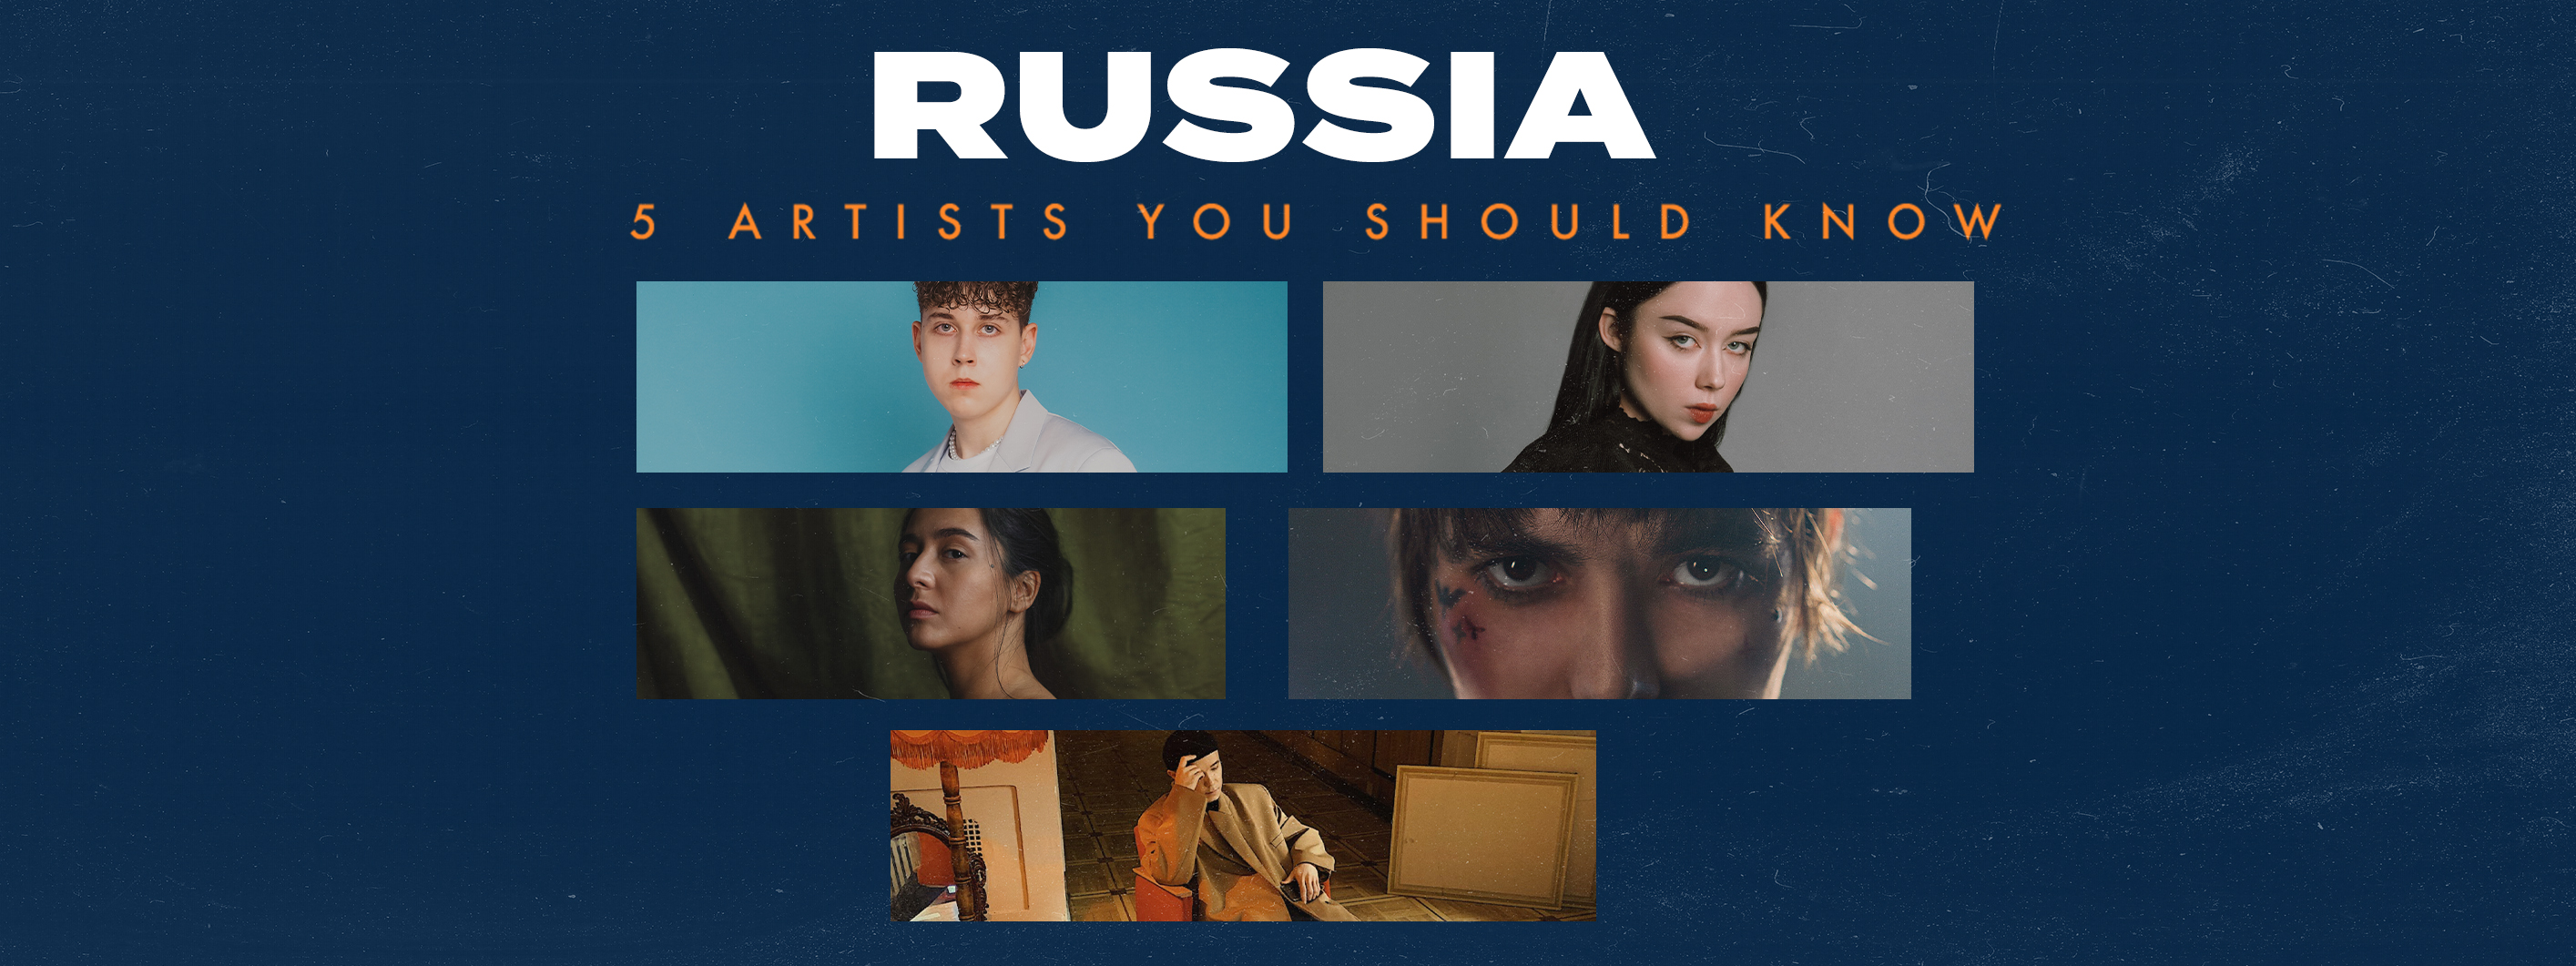 5 Artists You Should Know: Russia